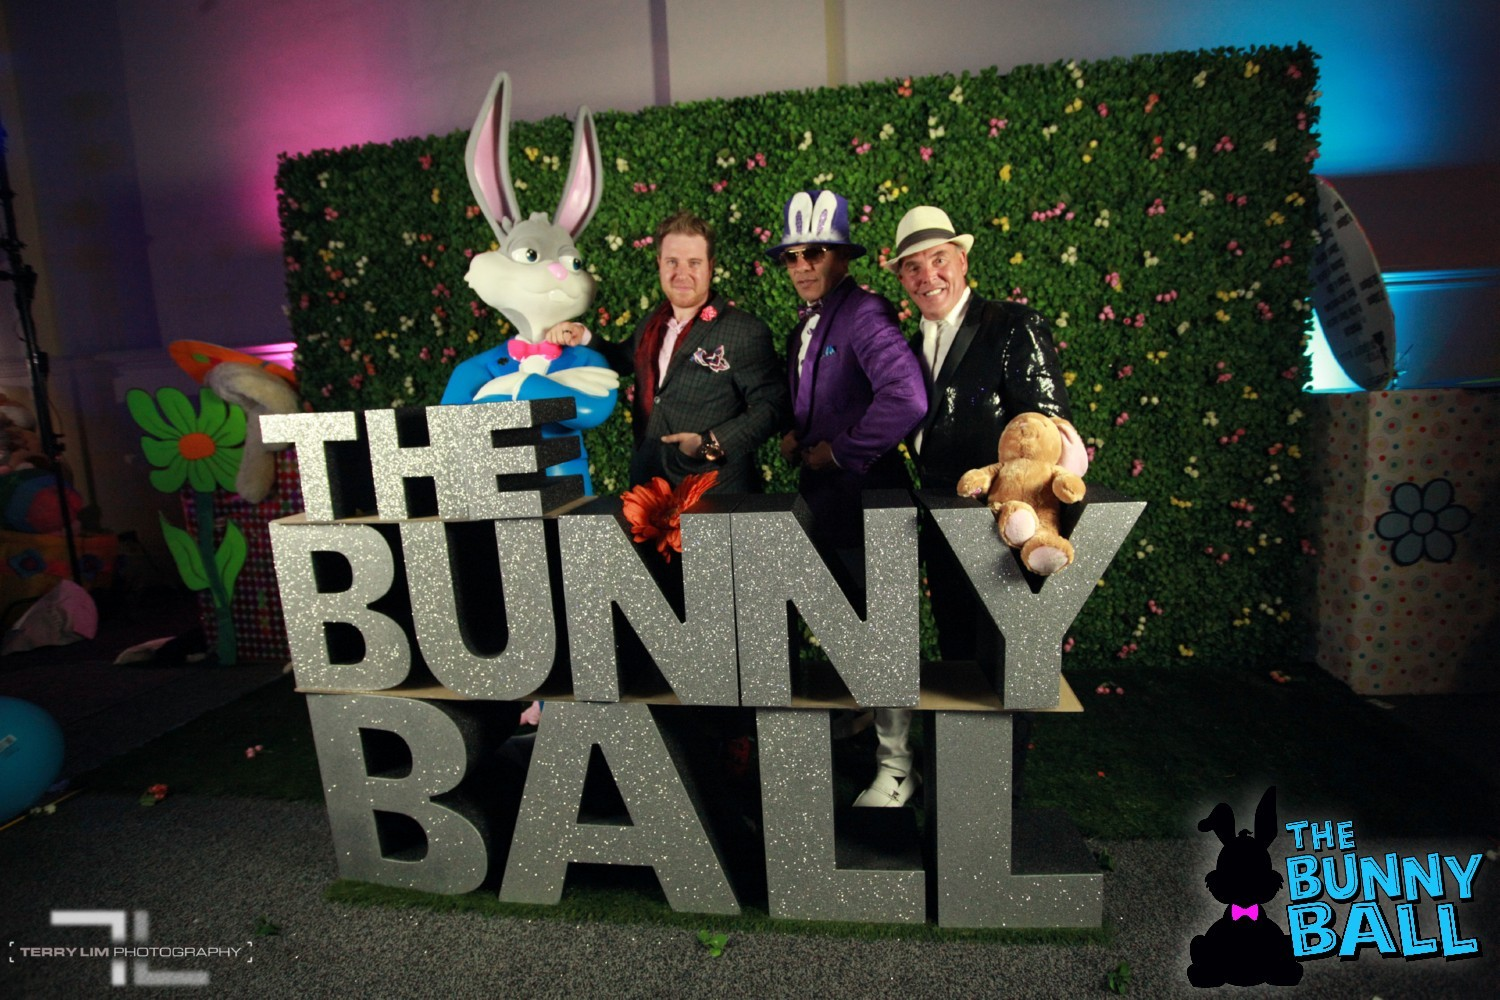 Bunny-Ball-2018-Terry-Lim- 331.jpg